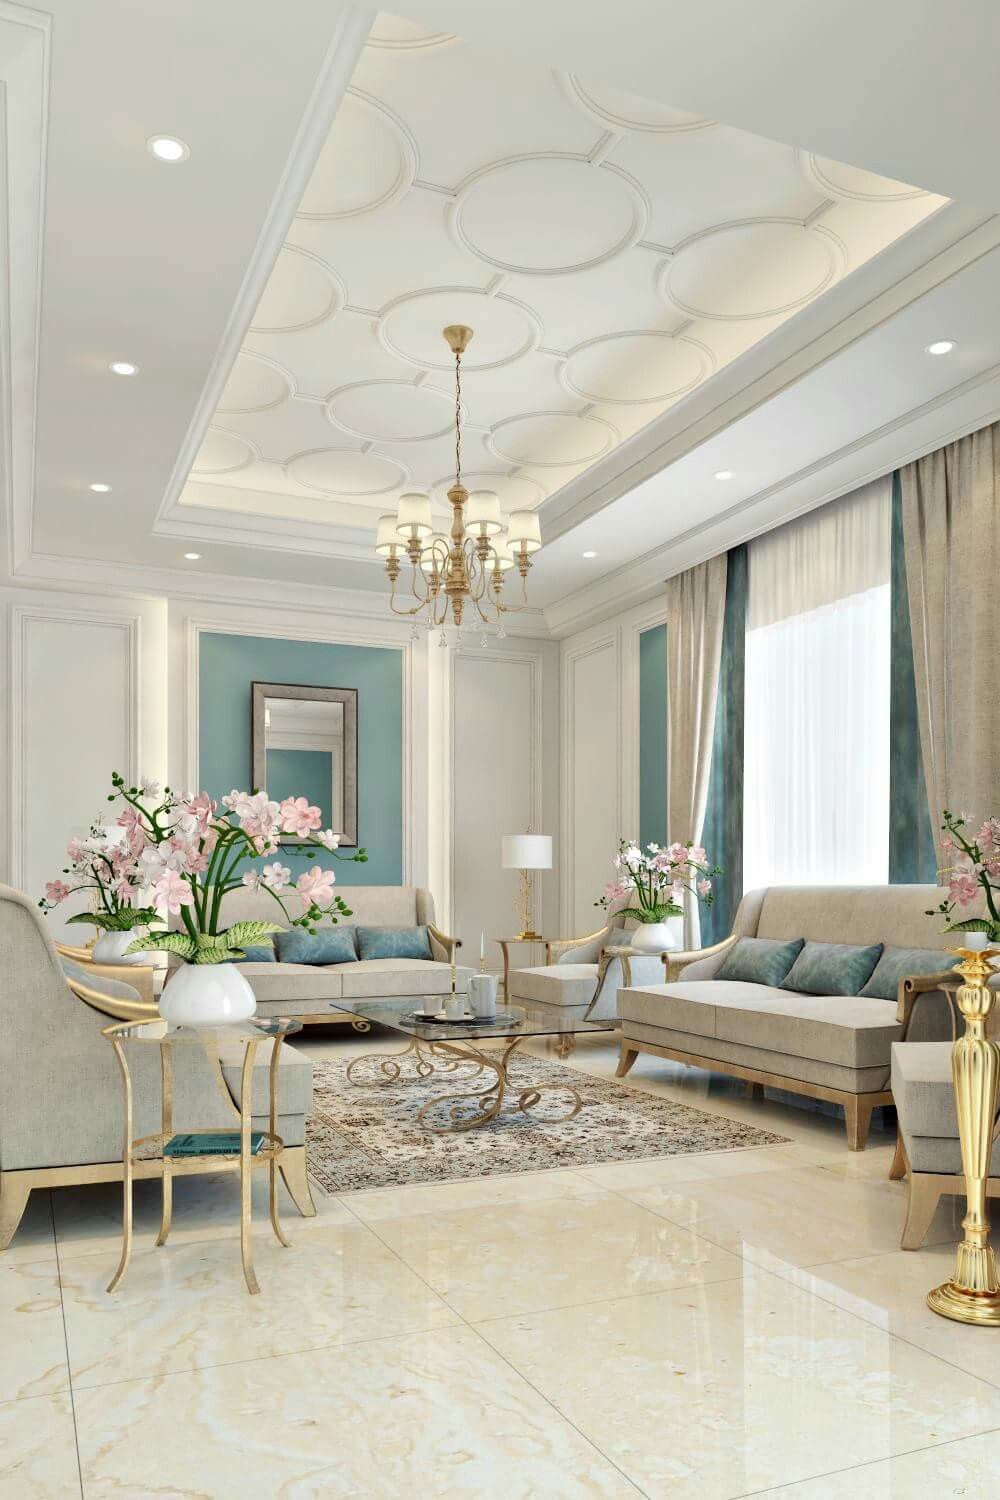 Abstract Room Designs: Pin Oleh ياسمين سمره Di Abstract Livings Seatings